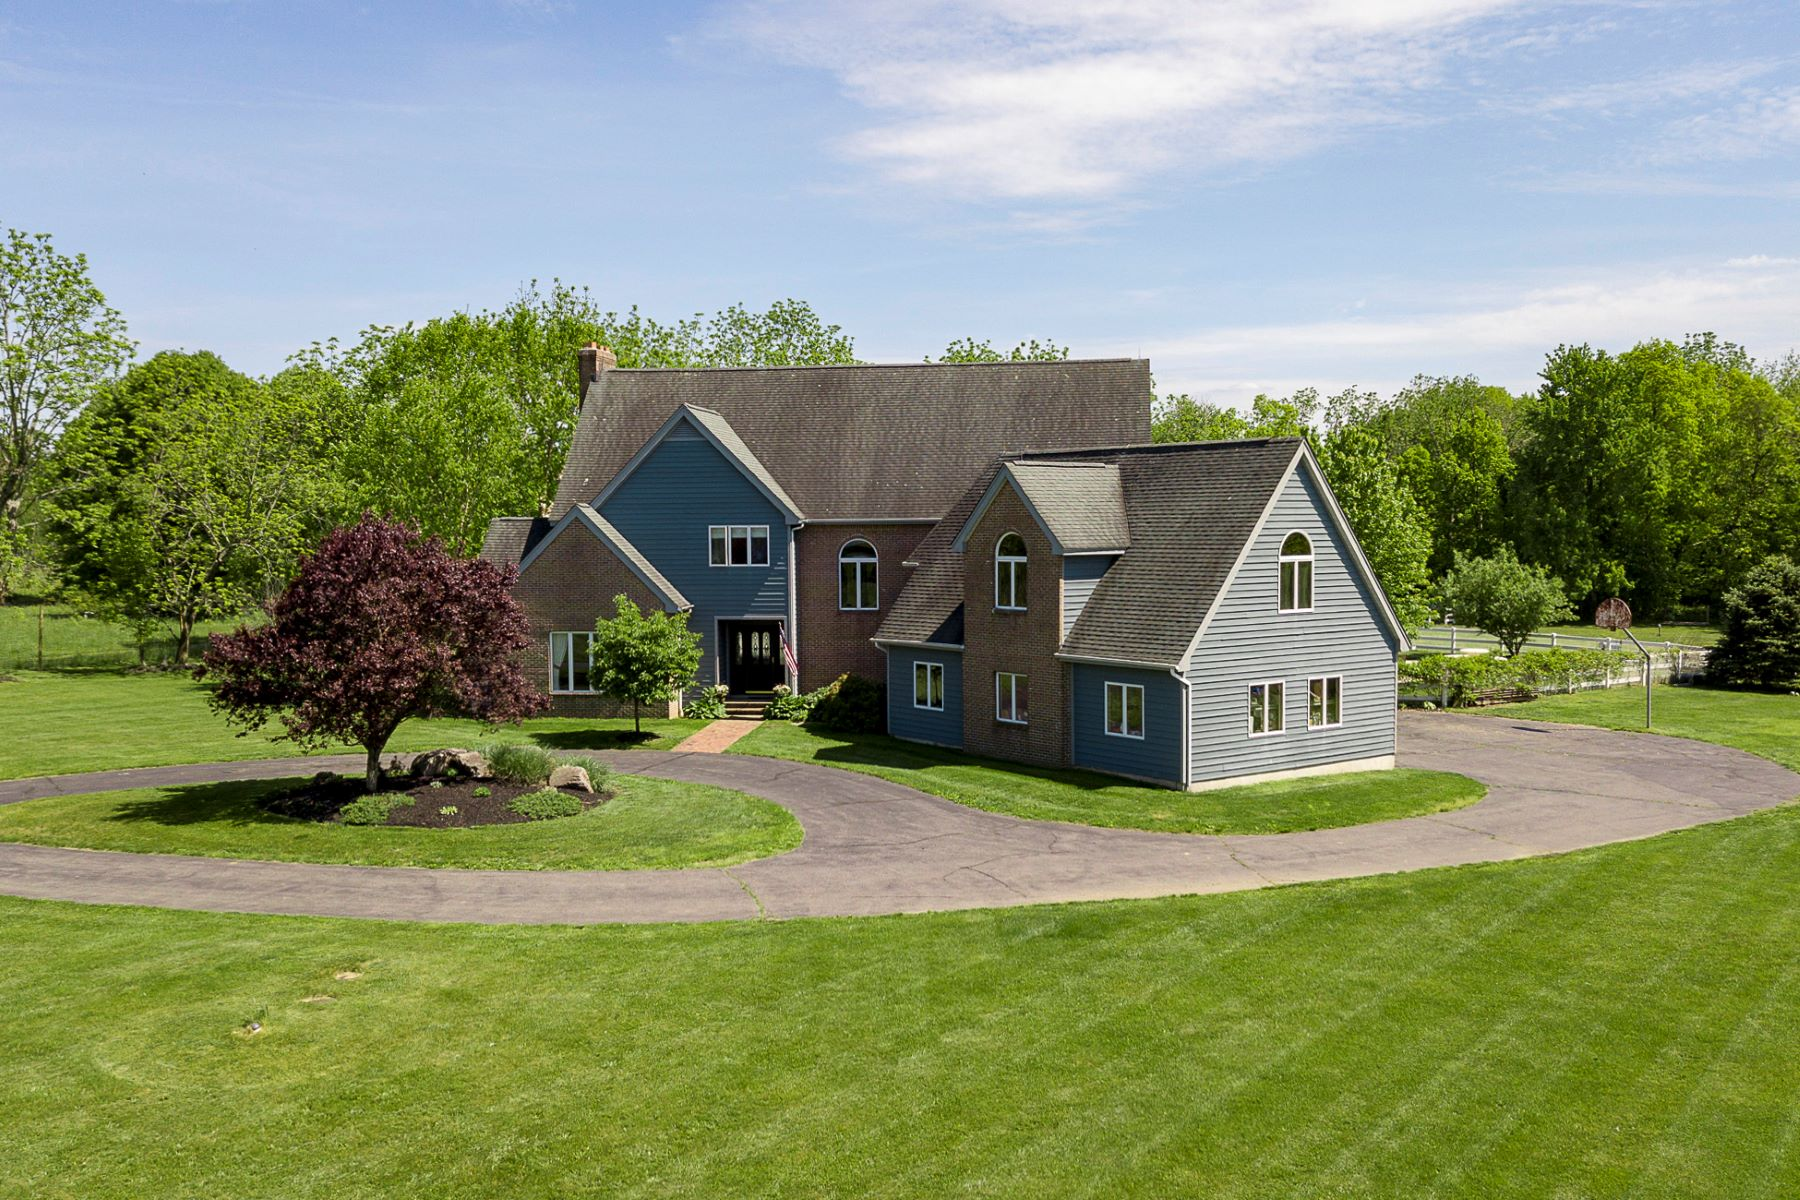 Single Family Homes für Verkauf beim Well-Designed and Solidly Built on 3+ Acres 17 Aqua Terrace, Hamilton, New Jersey 08620 Vereinigte Staaten